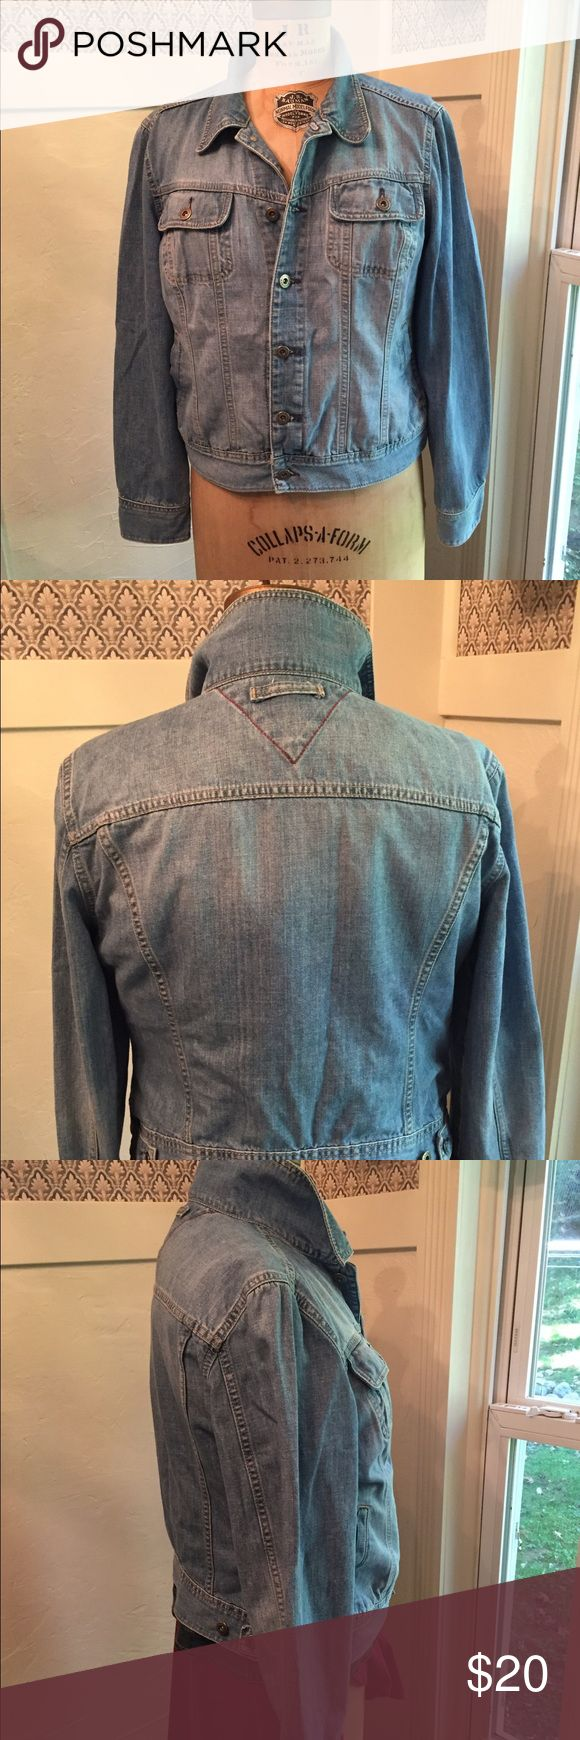 Tommy Hilfiger Ladies Denim Jacket Soft broken in denim jacket. Washed and Unworn by me. A very nice chambray color. No rips, tears, stains to report. Tommy Hilfiger Jackets & Coats Jean Jackets